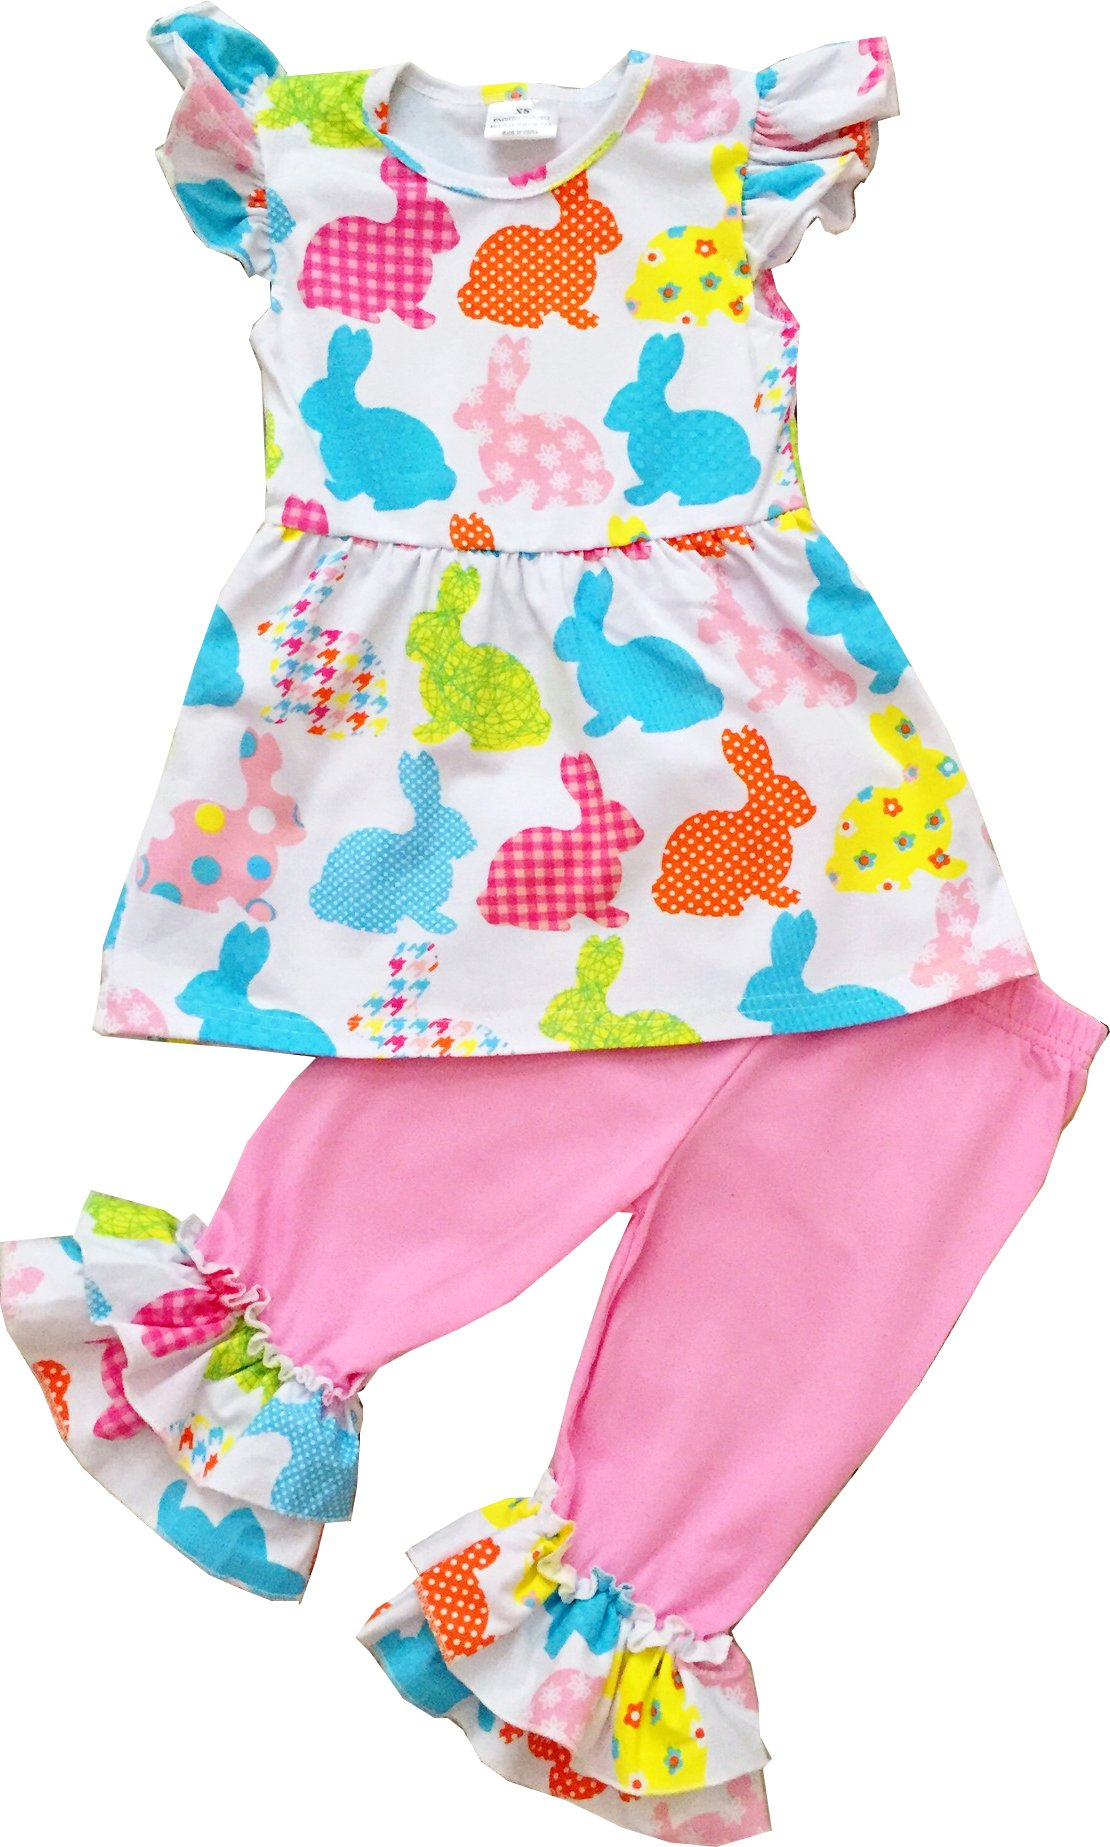 Girls Easter Bunny Outfit Set Flutter Sleeves Ruffles Capri Set Colorful/Pink 18-24 Months